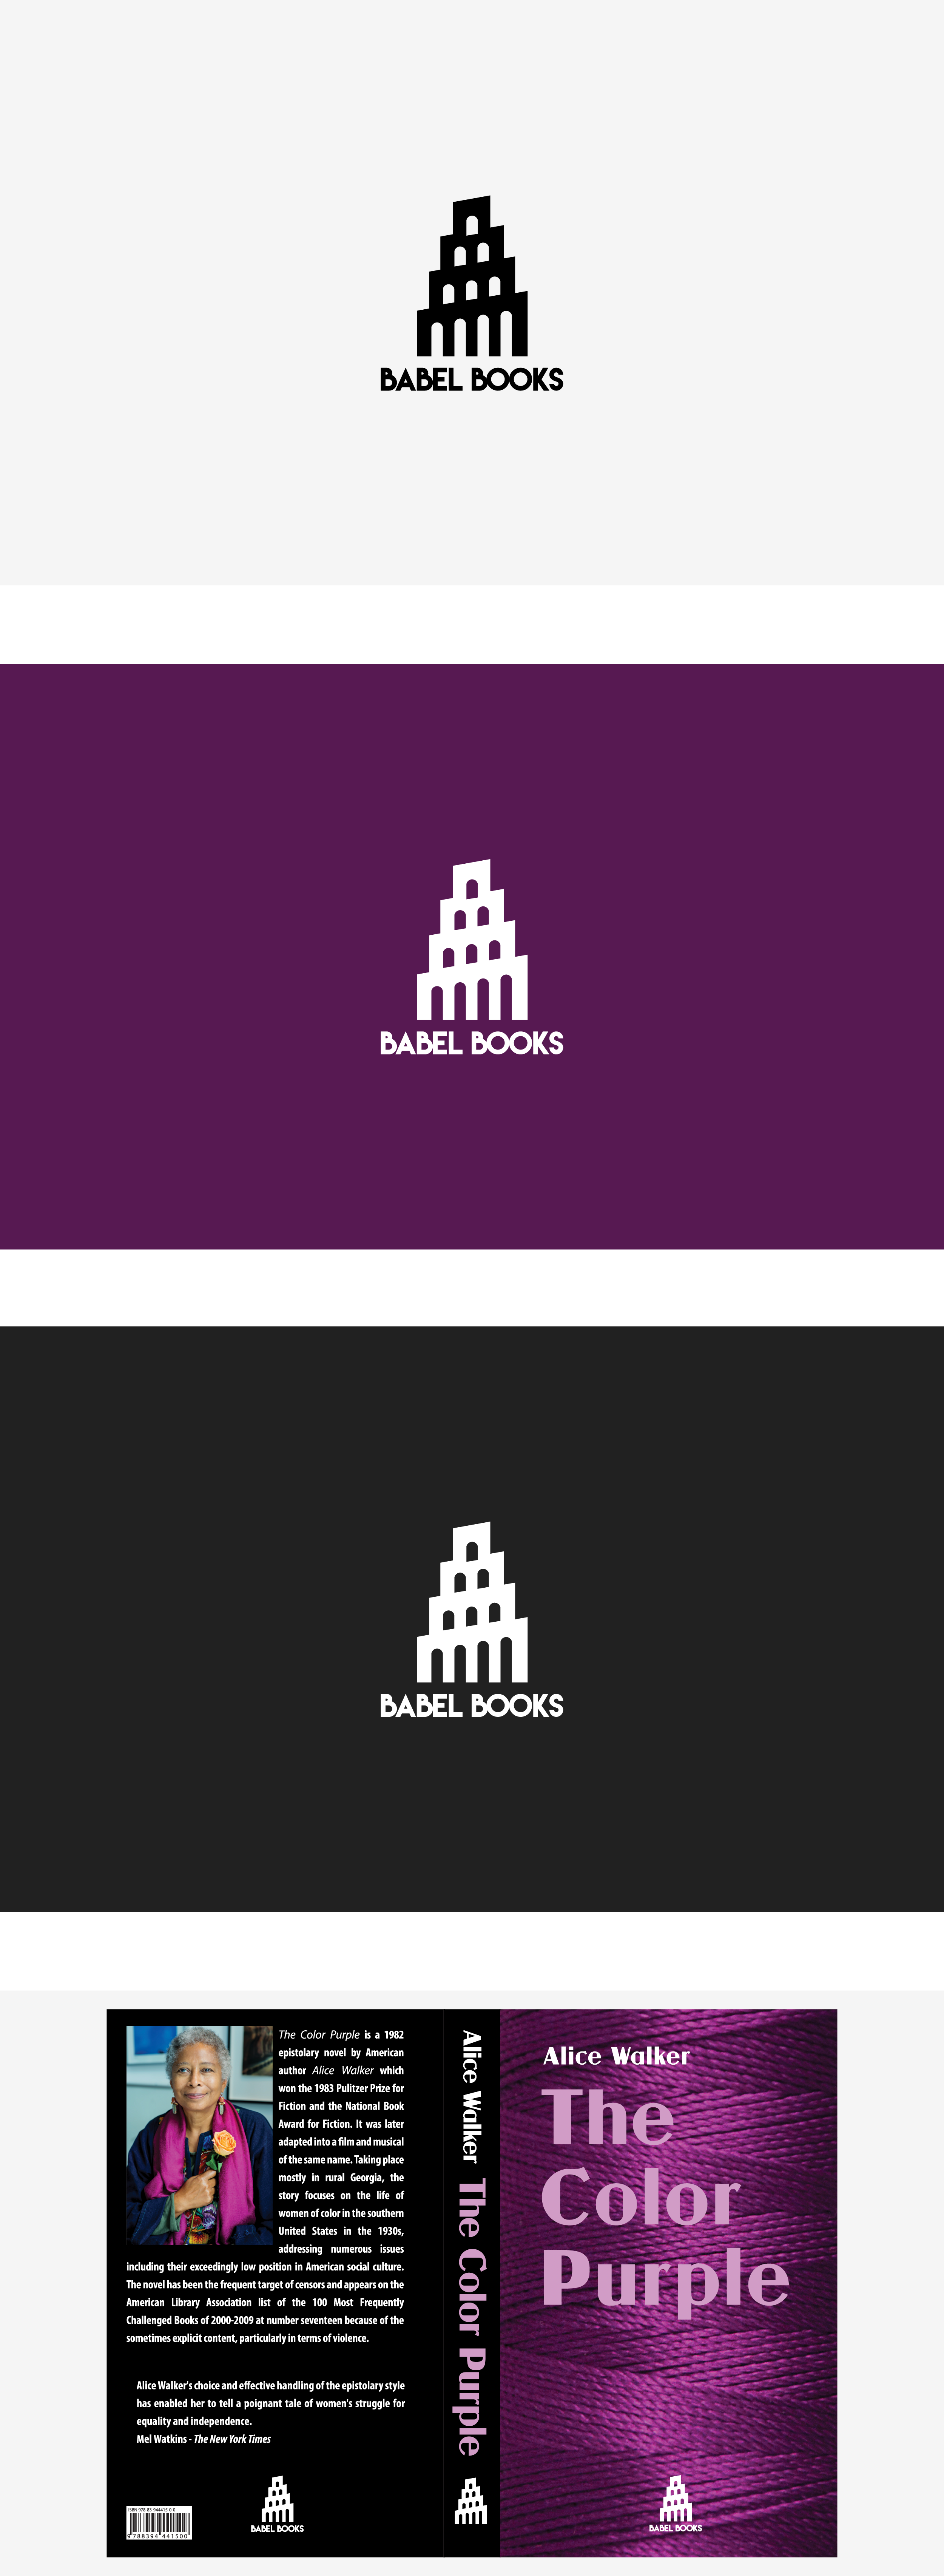 Babel Books\' Logo + \'The Color Purple\' Book Cover on Behance